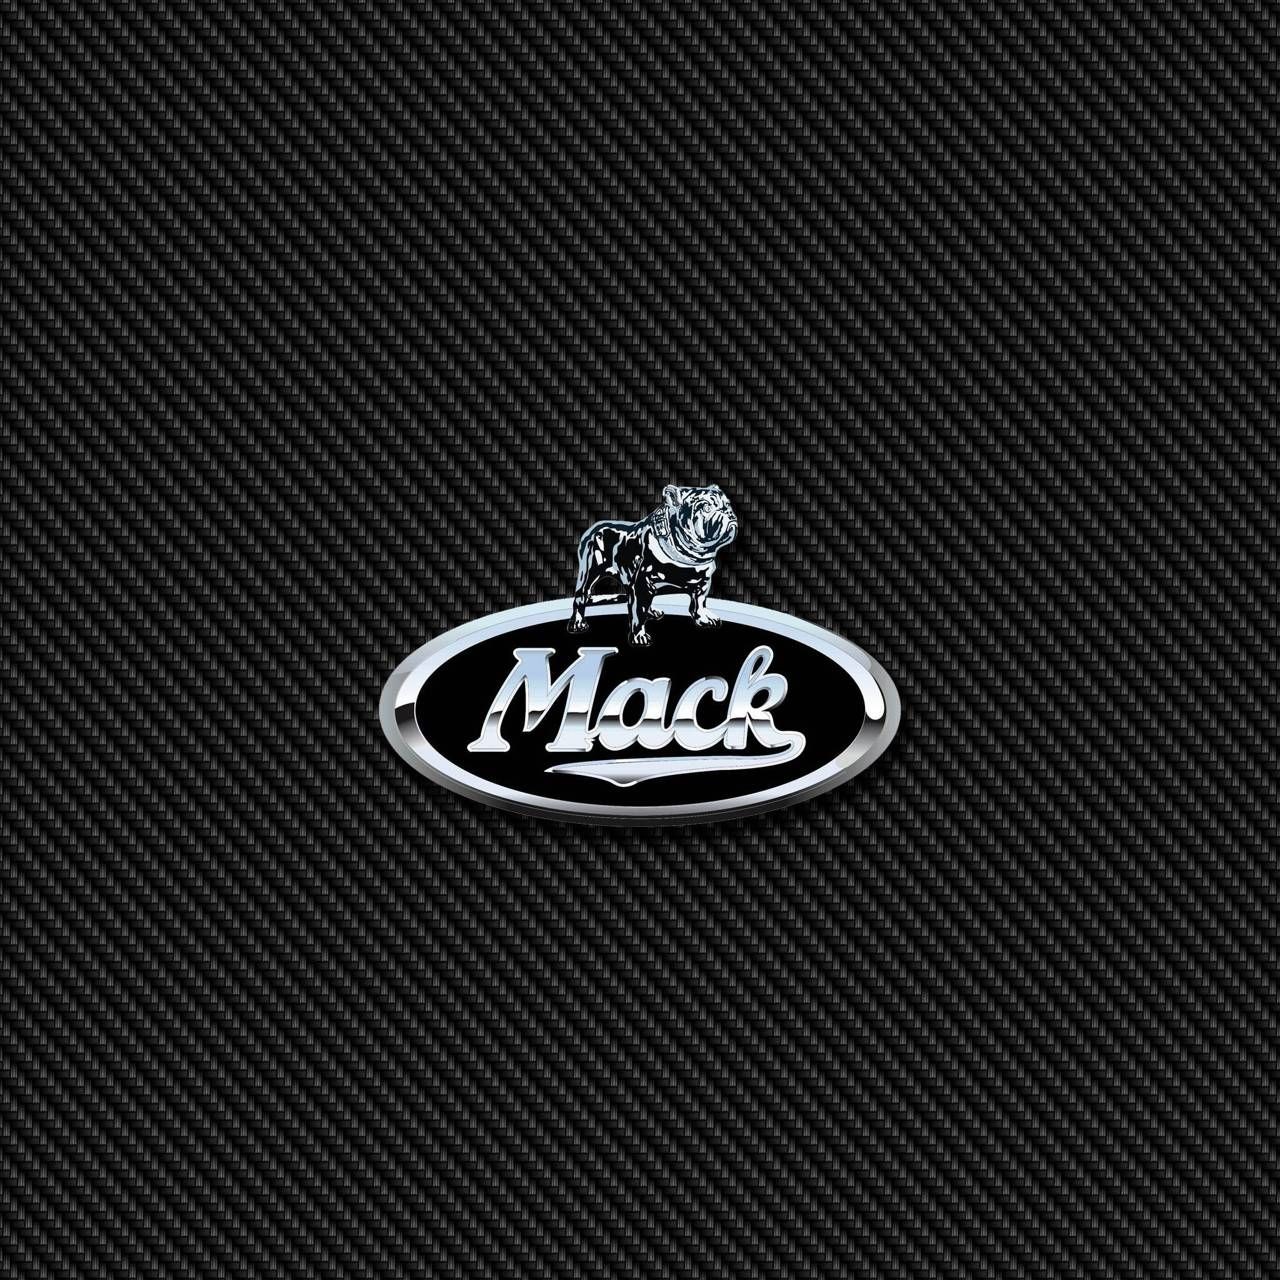 Download Mack Carbon Wallpaper By Bruceiras 17 Free On Zedge